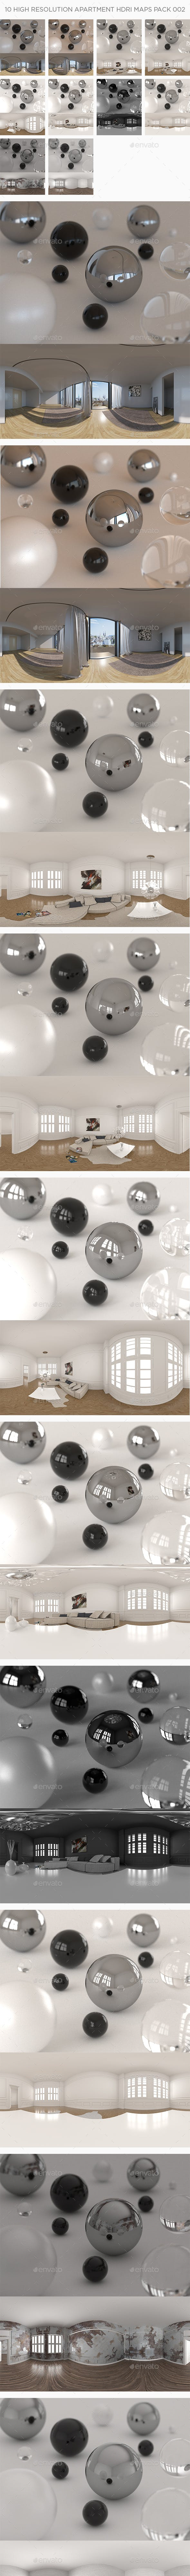 10 High Resolution Apartment HDRi Maps Pack 002 - 3DOcean Item for Sale